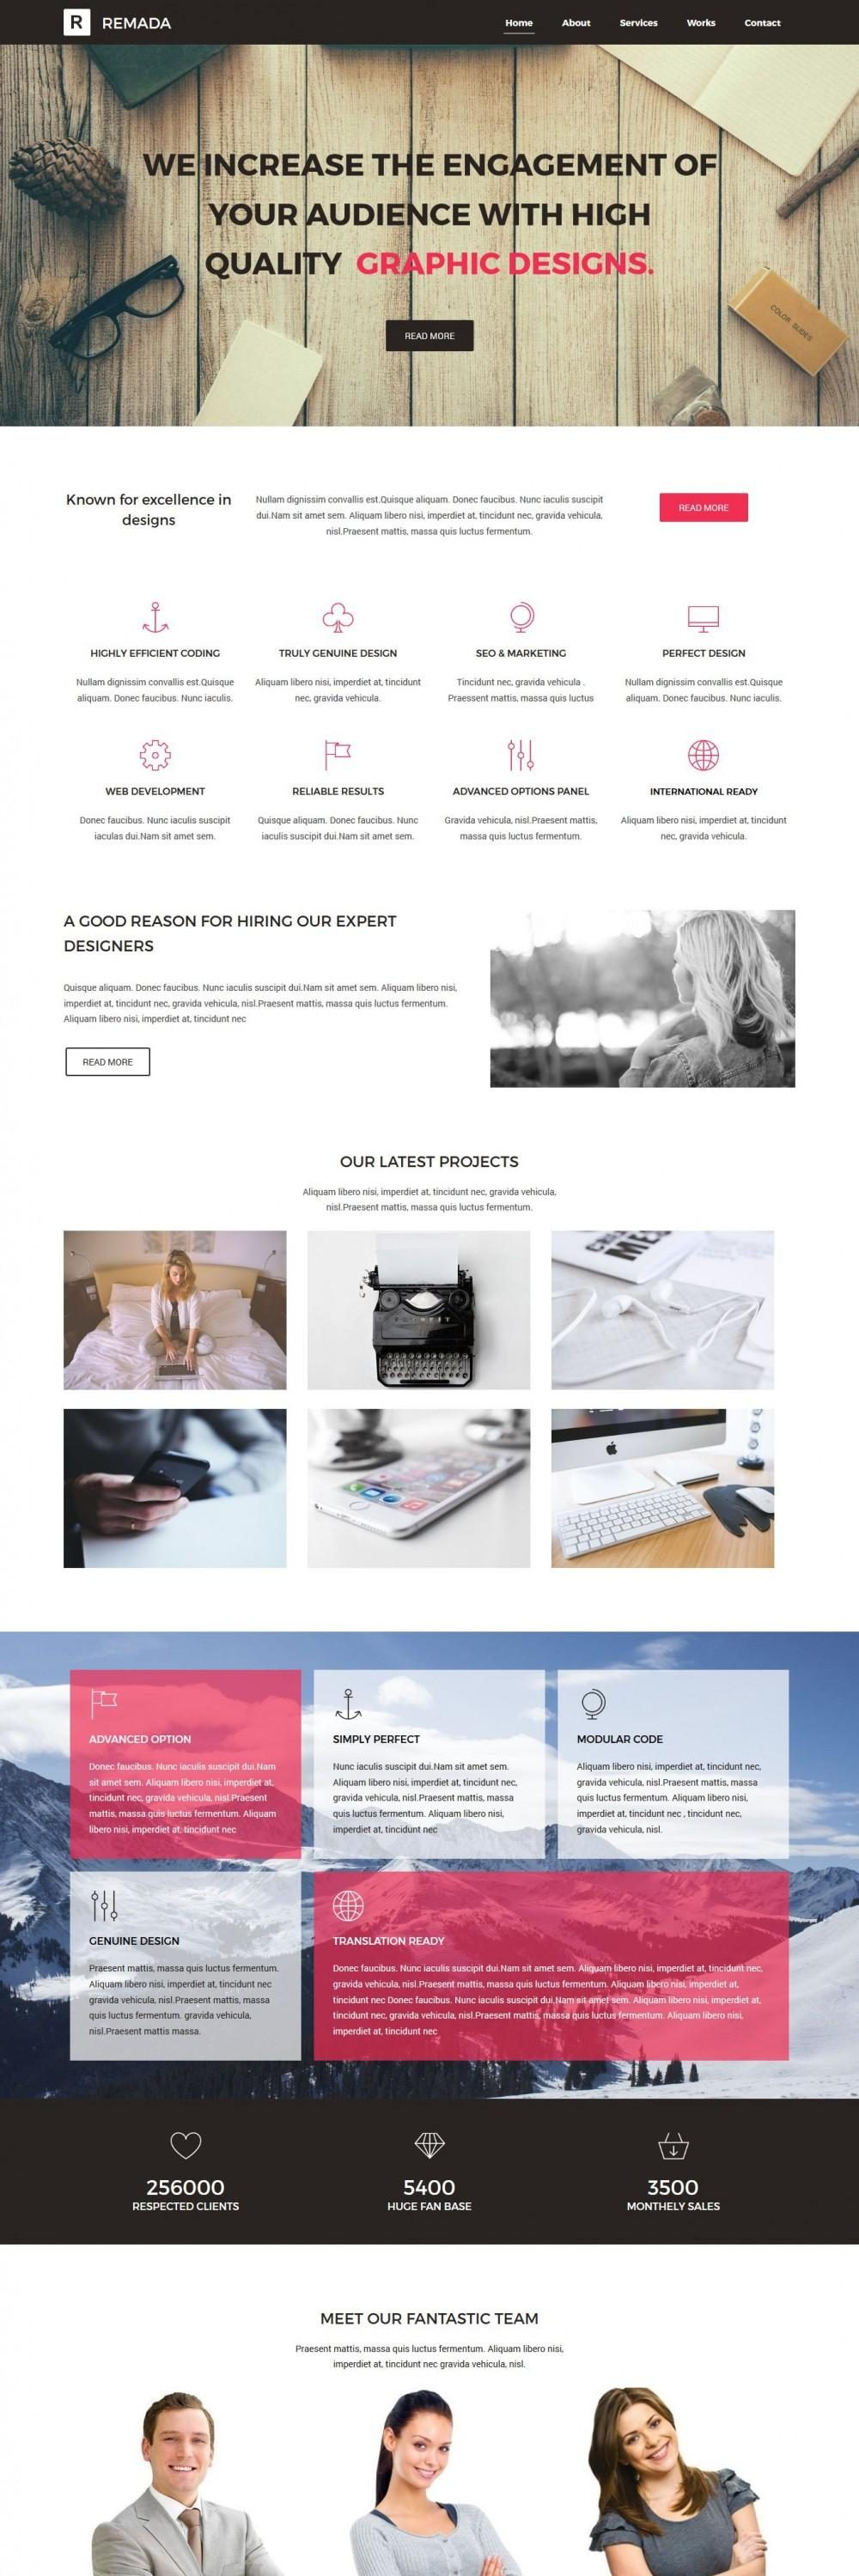 Remada - Joomla Template for Graphic And Web Design Agency